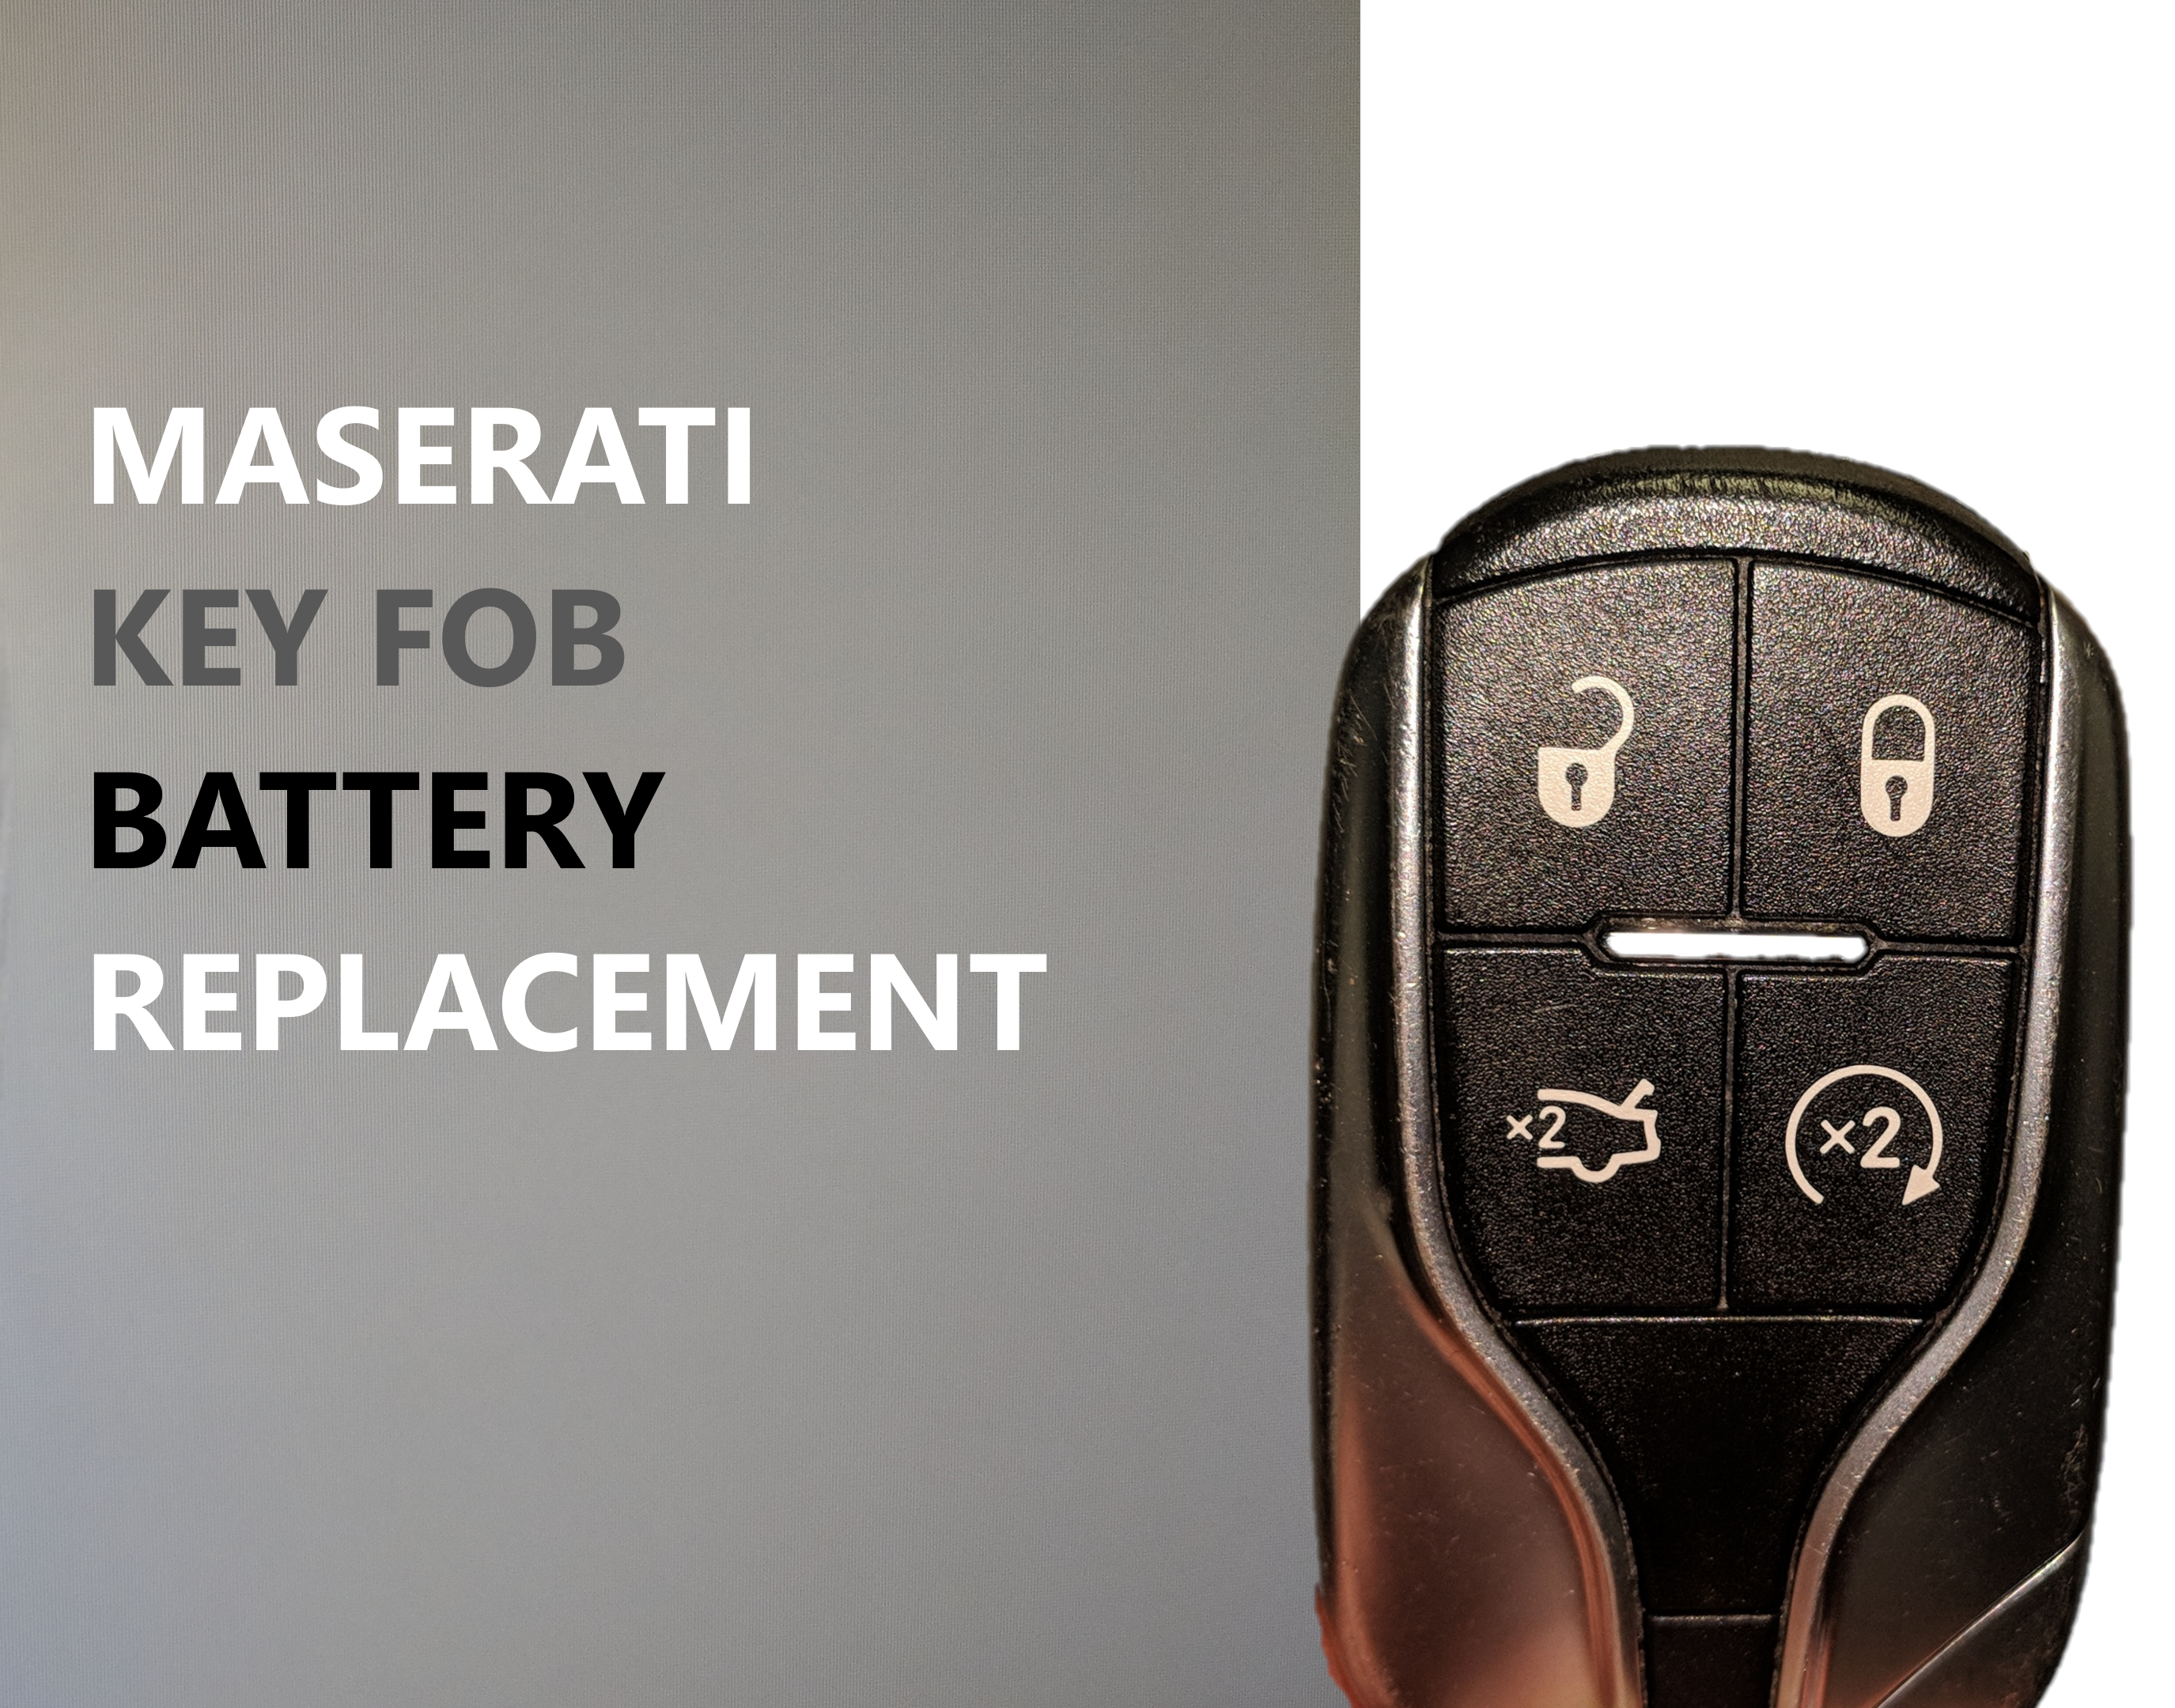 Maserati Key fob Battery Replacement